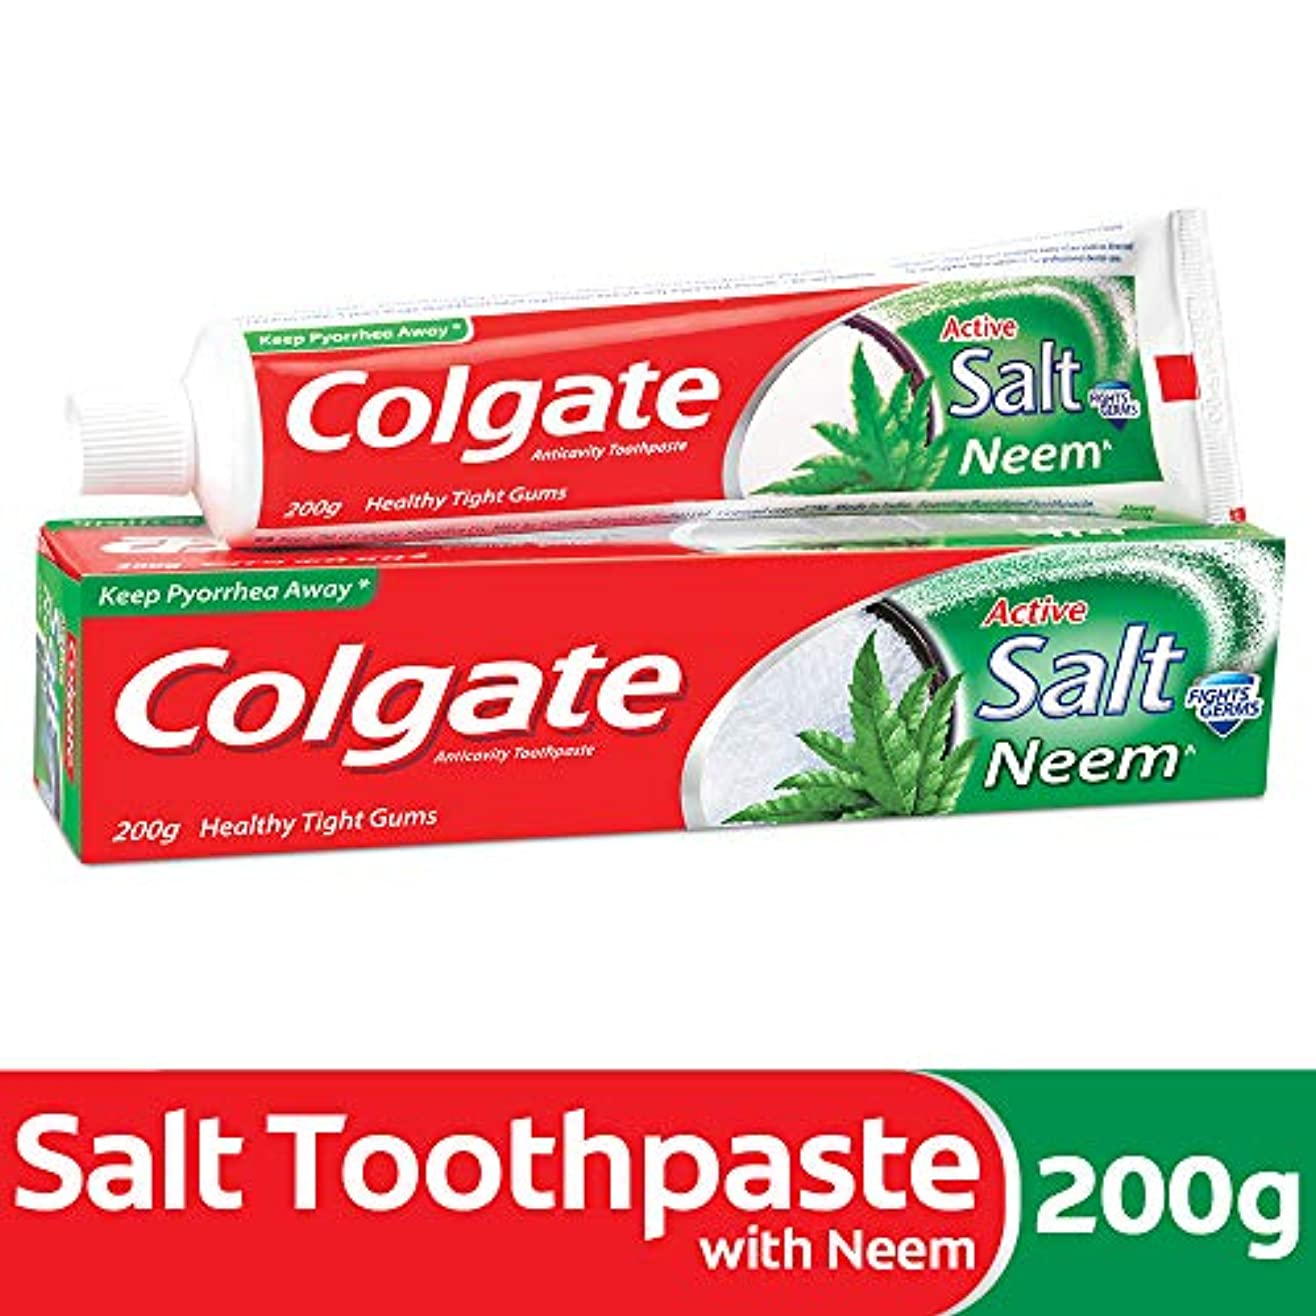 スペクトラム活発霜Colgate Active Salt Neem Anticavity Toothpaste - 200g